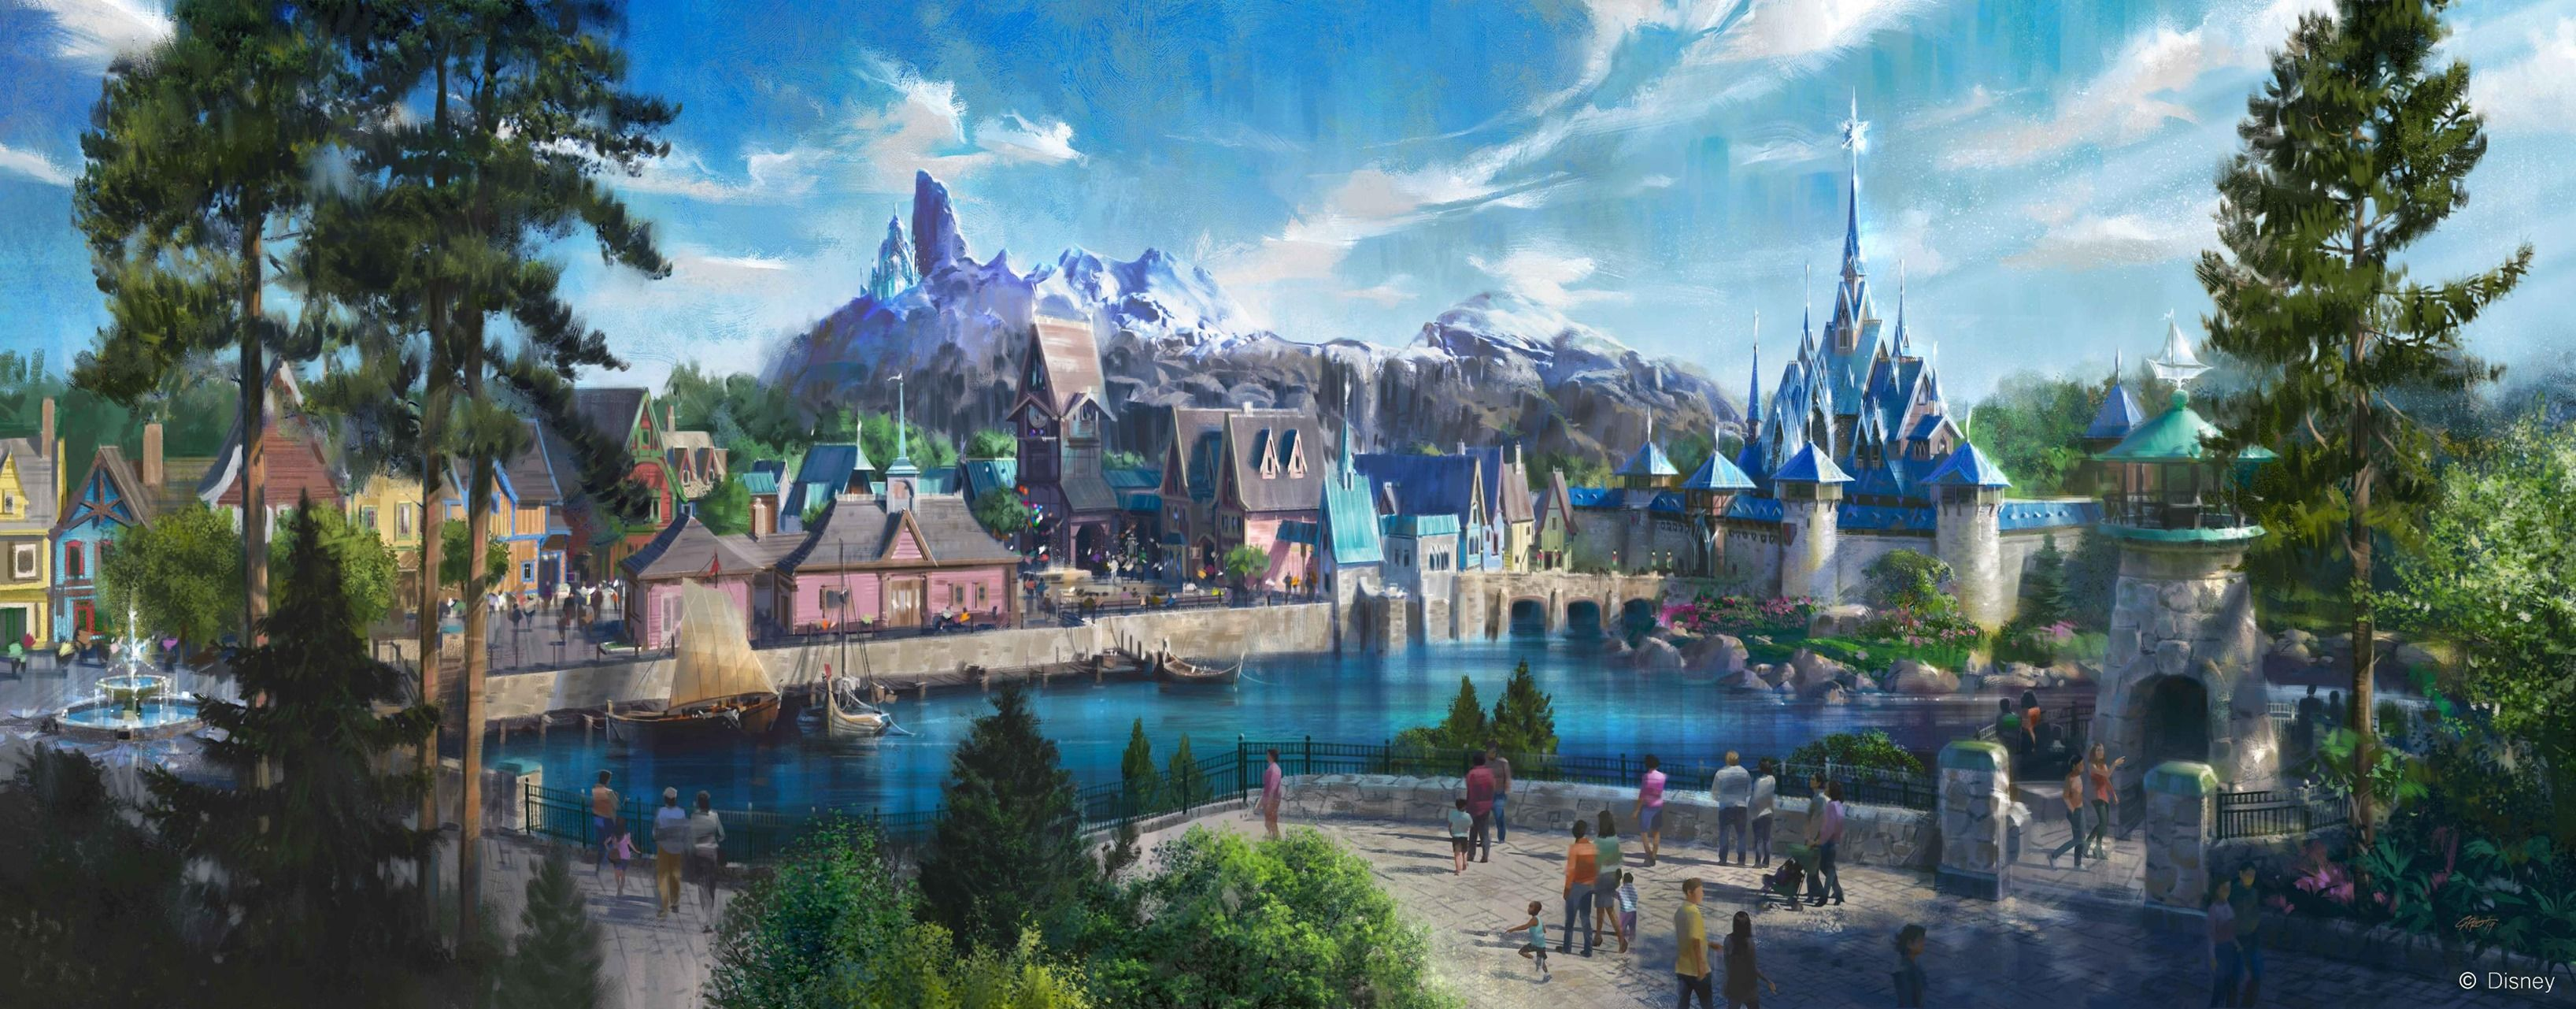 Disneyland Paris Is Opening A 'Frozen'-Themed Park With A Snow-Capped Mountain Of Arendelle